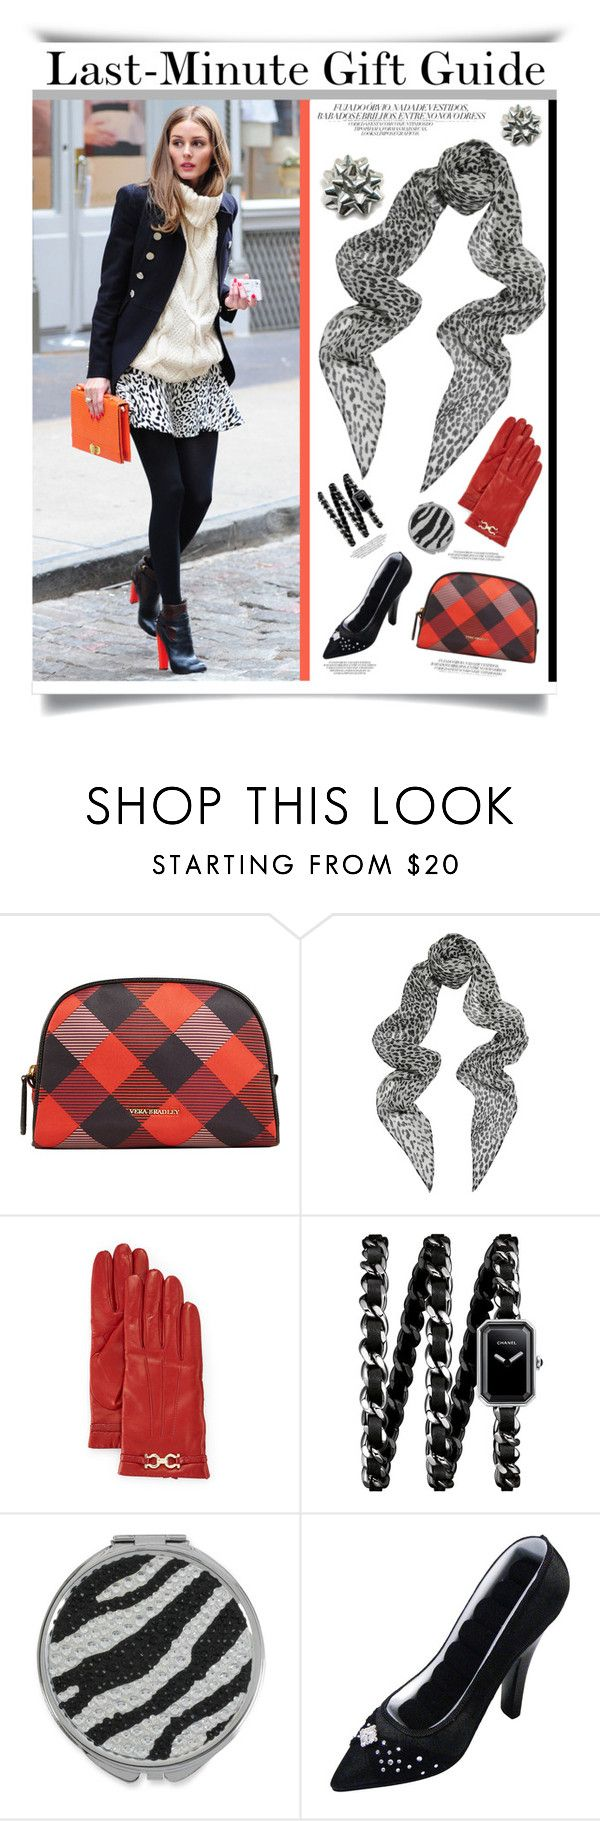 """""""Last-Minute Gift Ideas'"""" by dianefantasy ❤ liked on Polyvore featuring Vera Bradley, Yves Saint Laurent, Salvatore Ferragamo, Chanel, Betsey Johnson, polyvoreeditorial and lastminutegifts"""